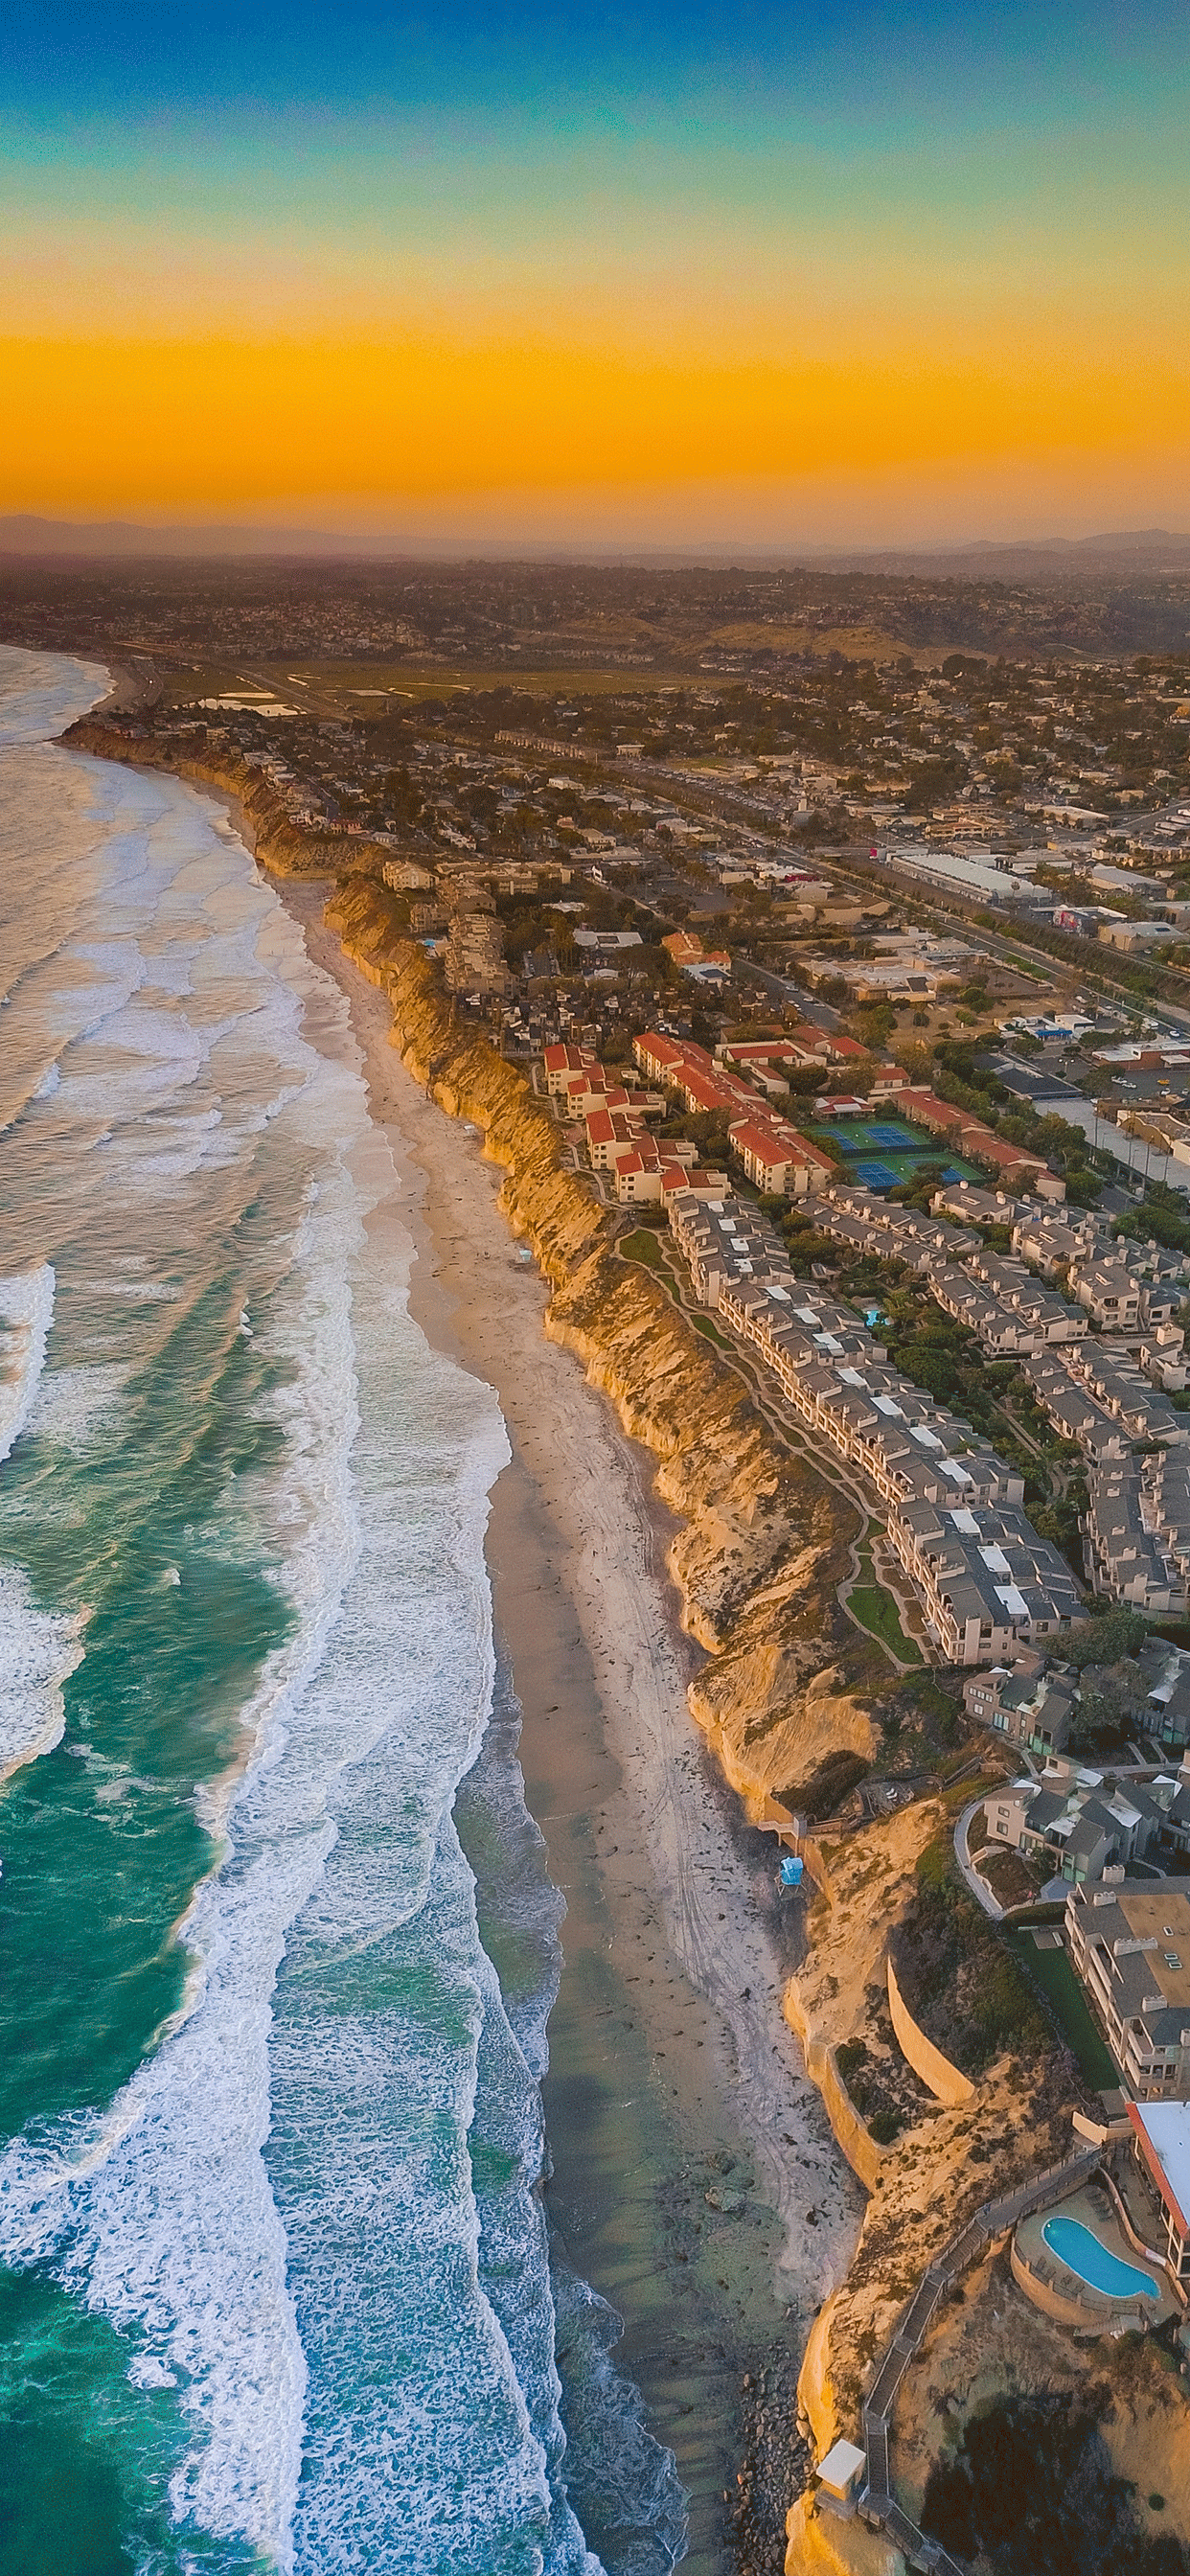 iPhone wallpaper aerial images san diego Aerial images